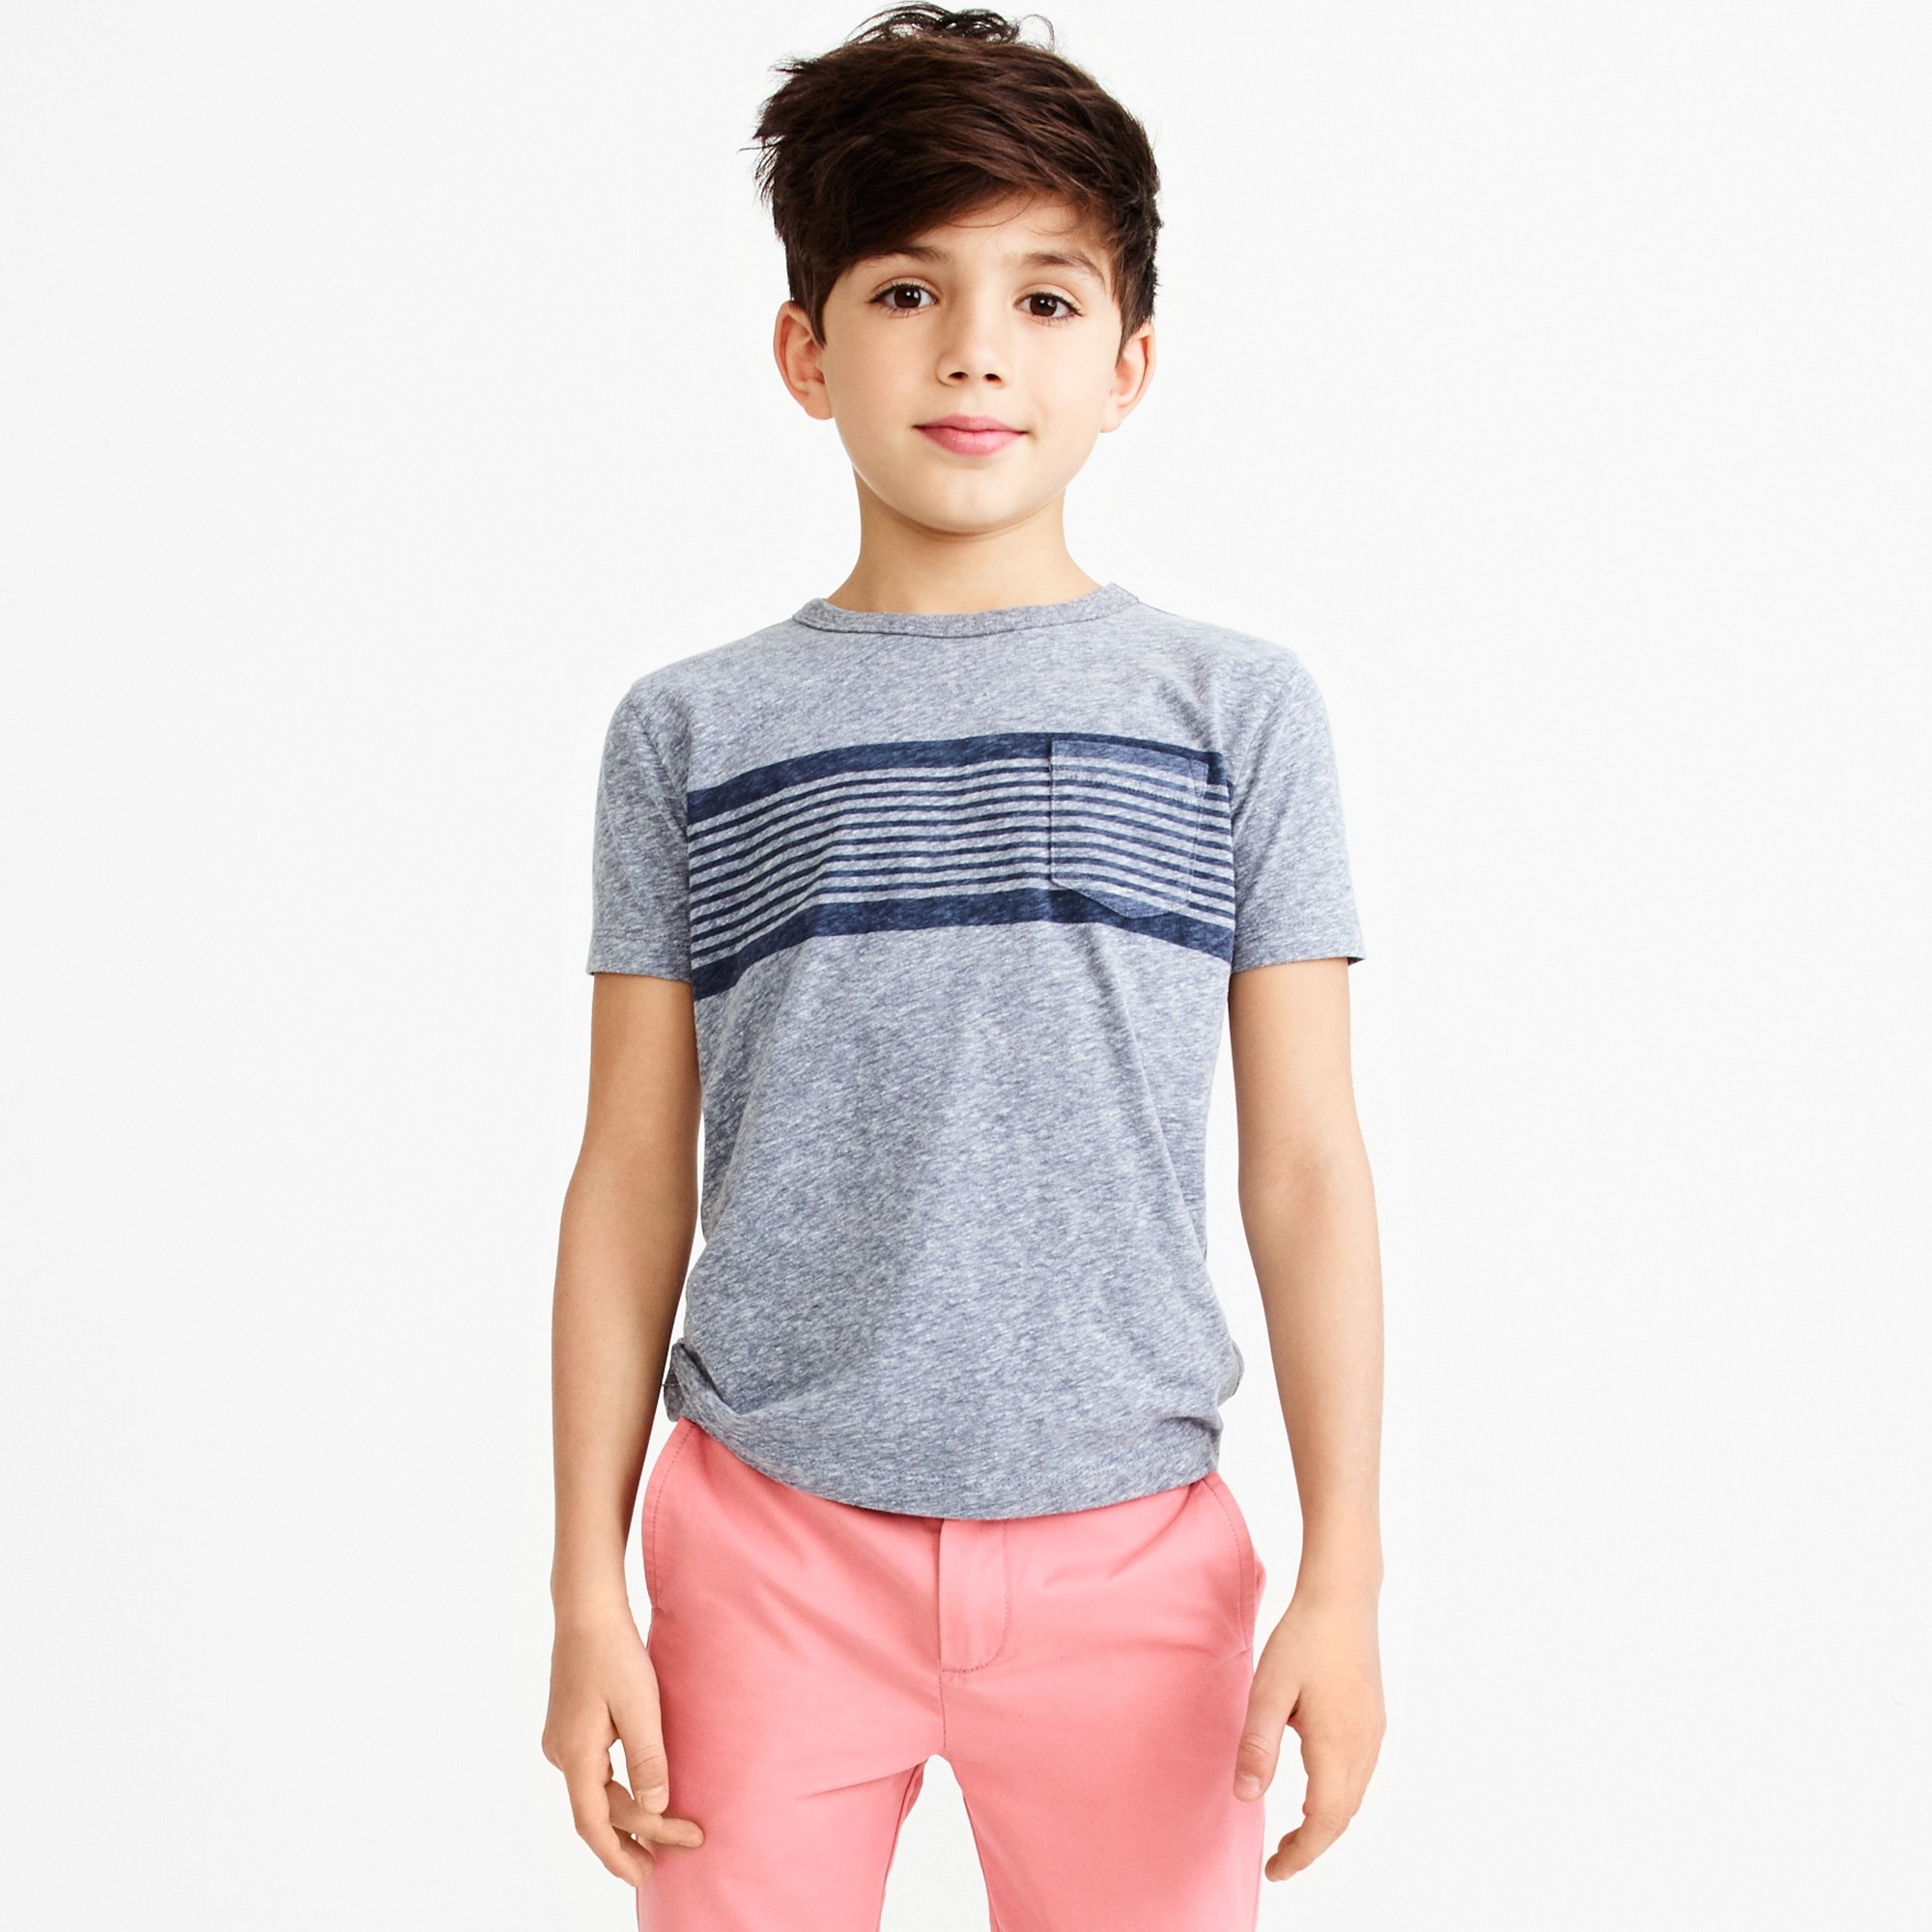 Boys' chest stripe jersey T-shirt factoryboys the camp shop c